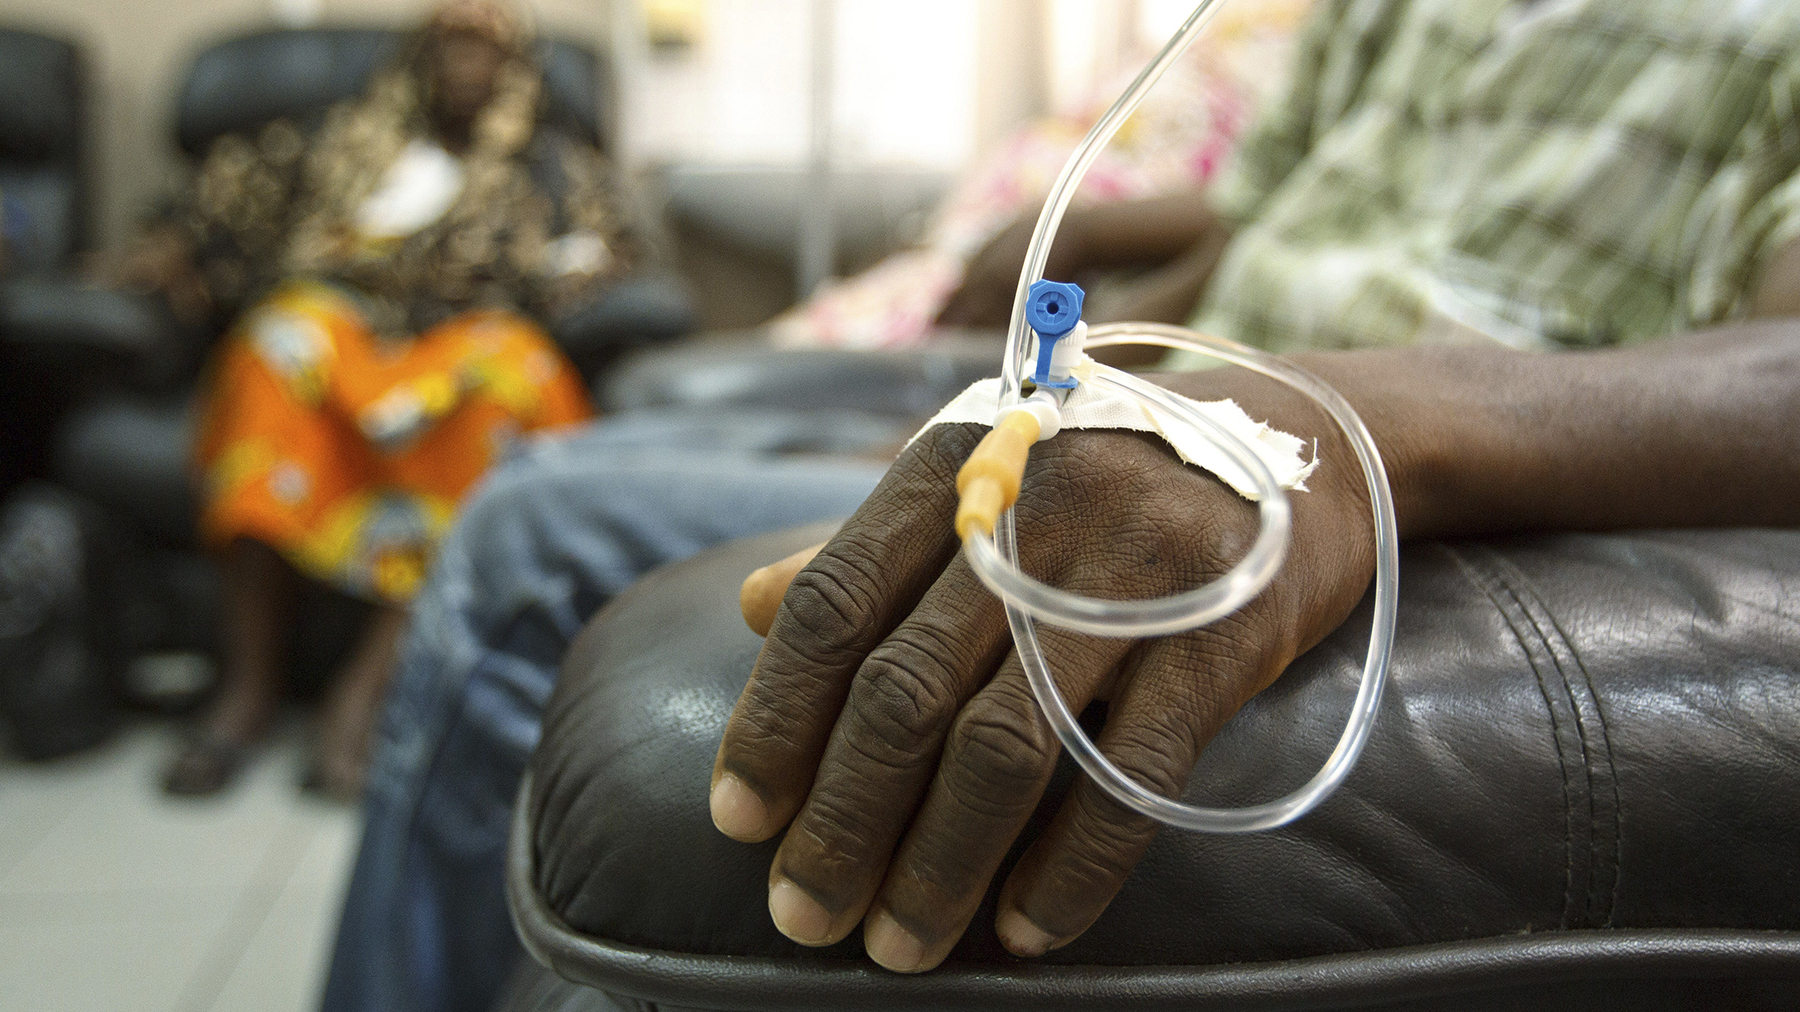 Cancer treatment therapies remain out of reach for many patients across the world, including for patients in Africa. (Photo by Olivier Asselin/Reuters)